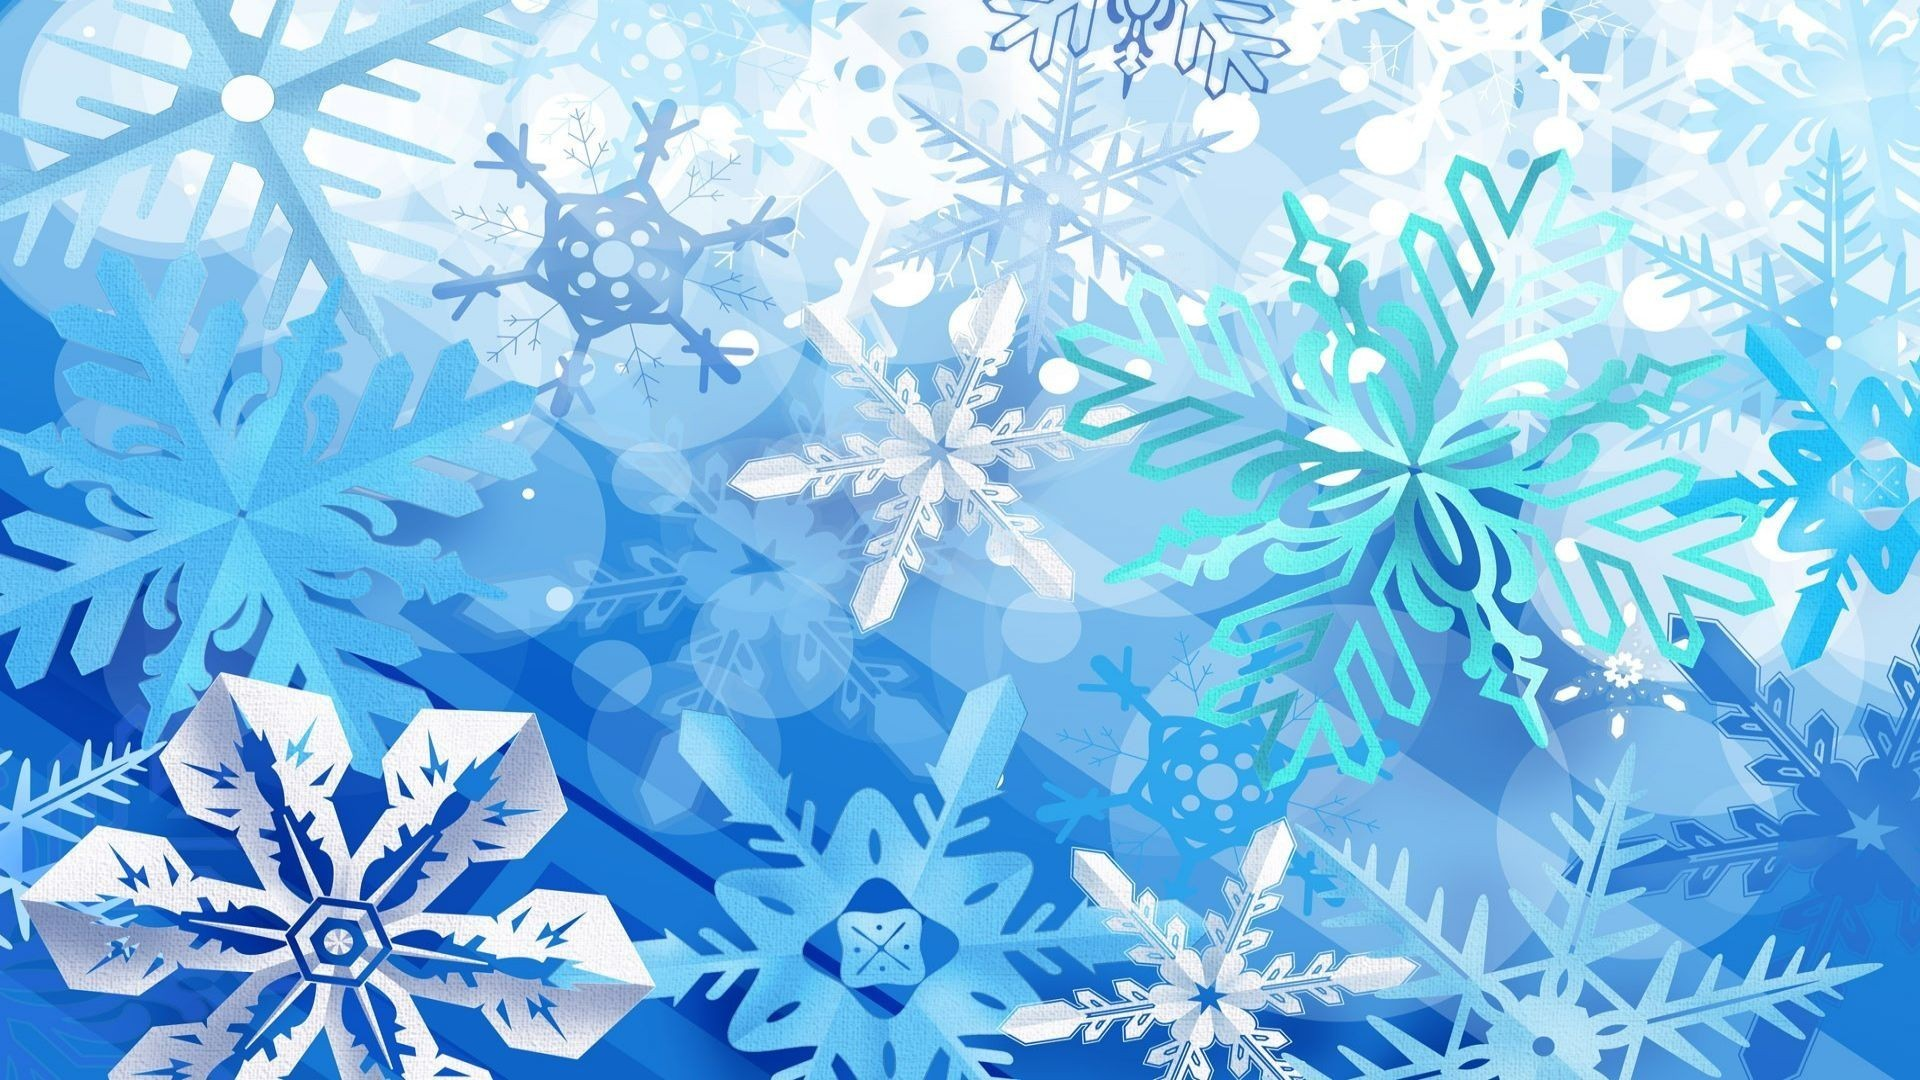 Simple Christmas Snow Backgrounds Backgrounds Snow Ideas Christmas Snow  Backgrounds